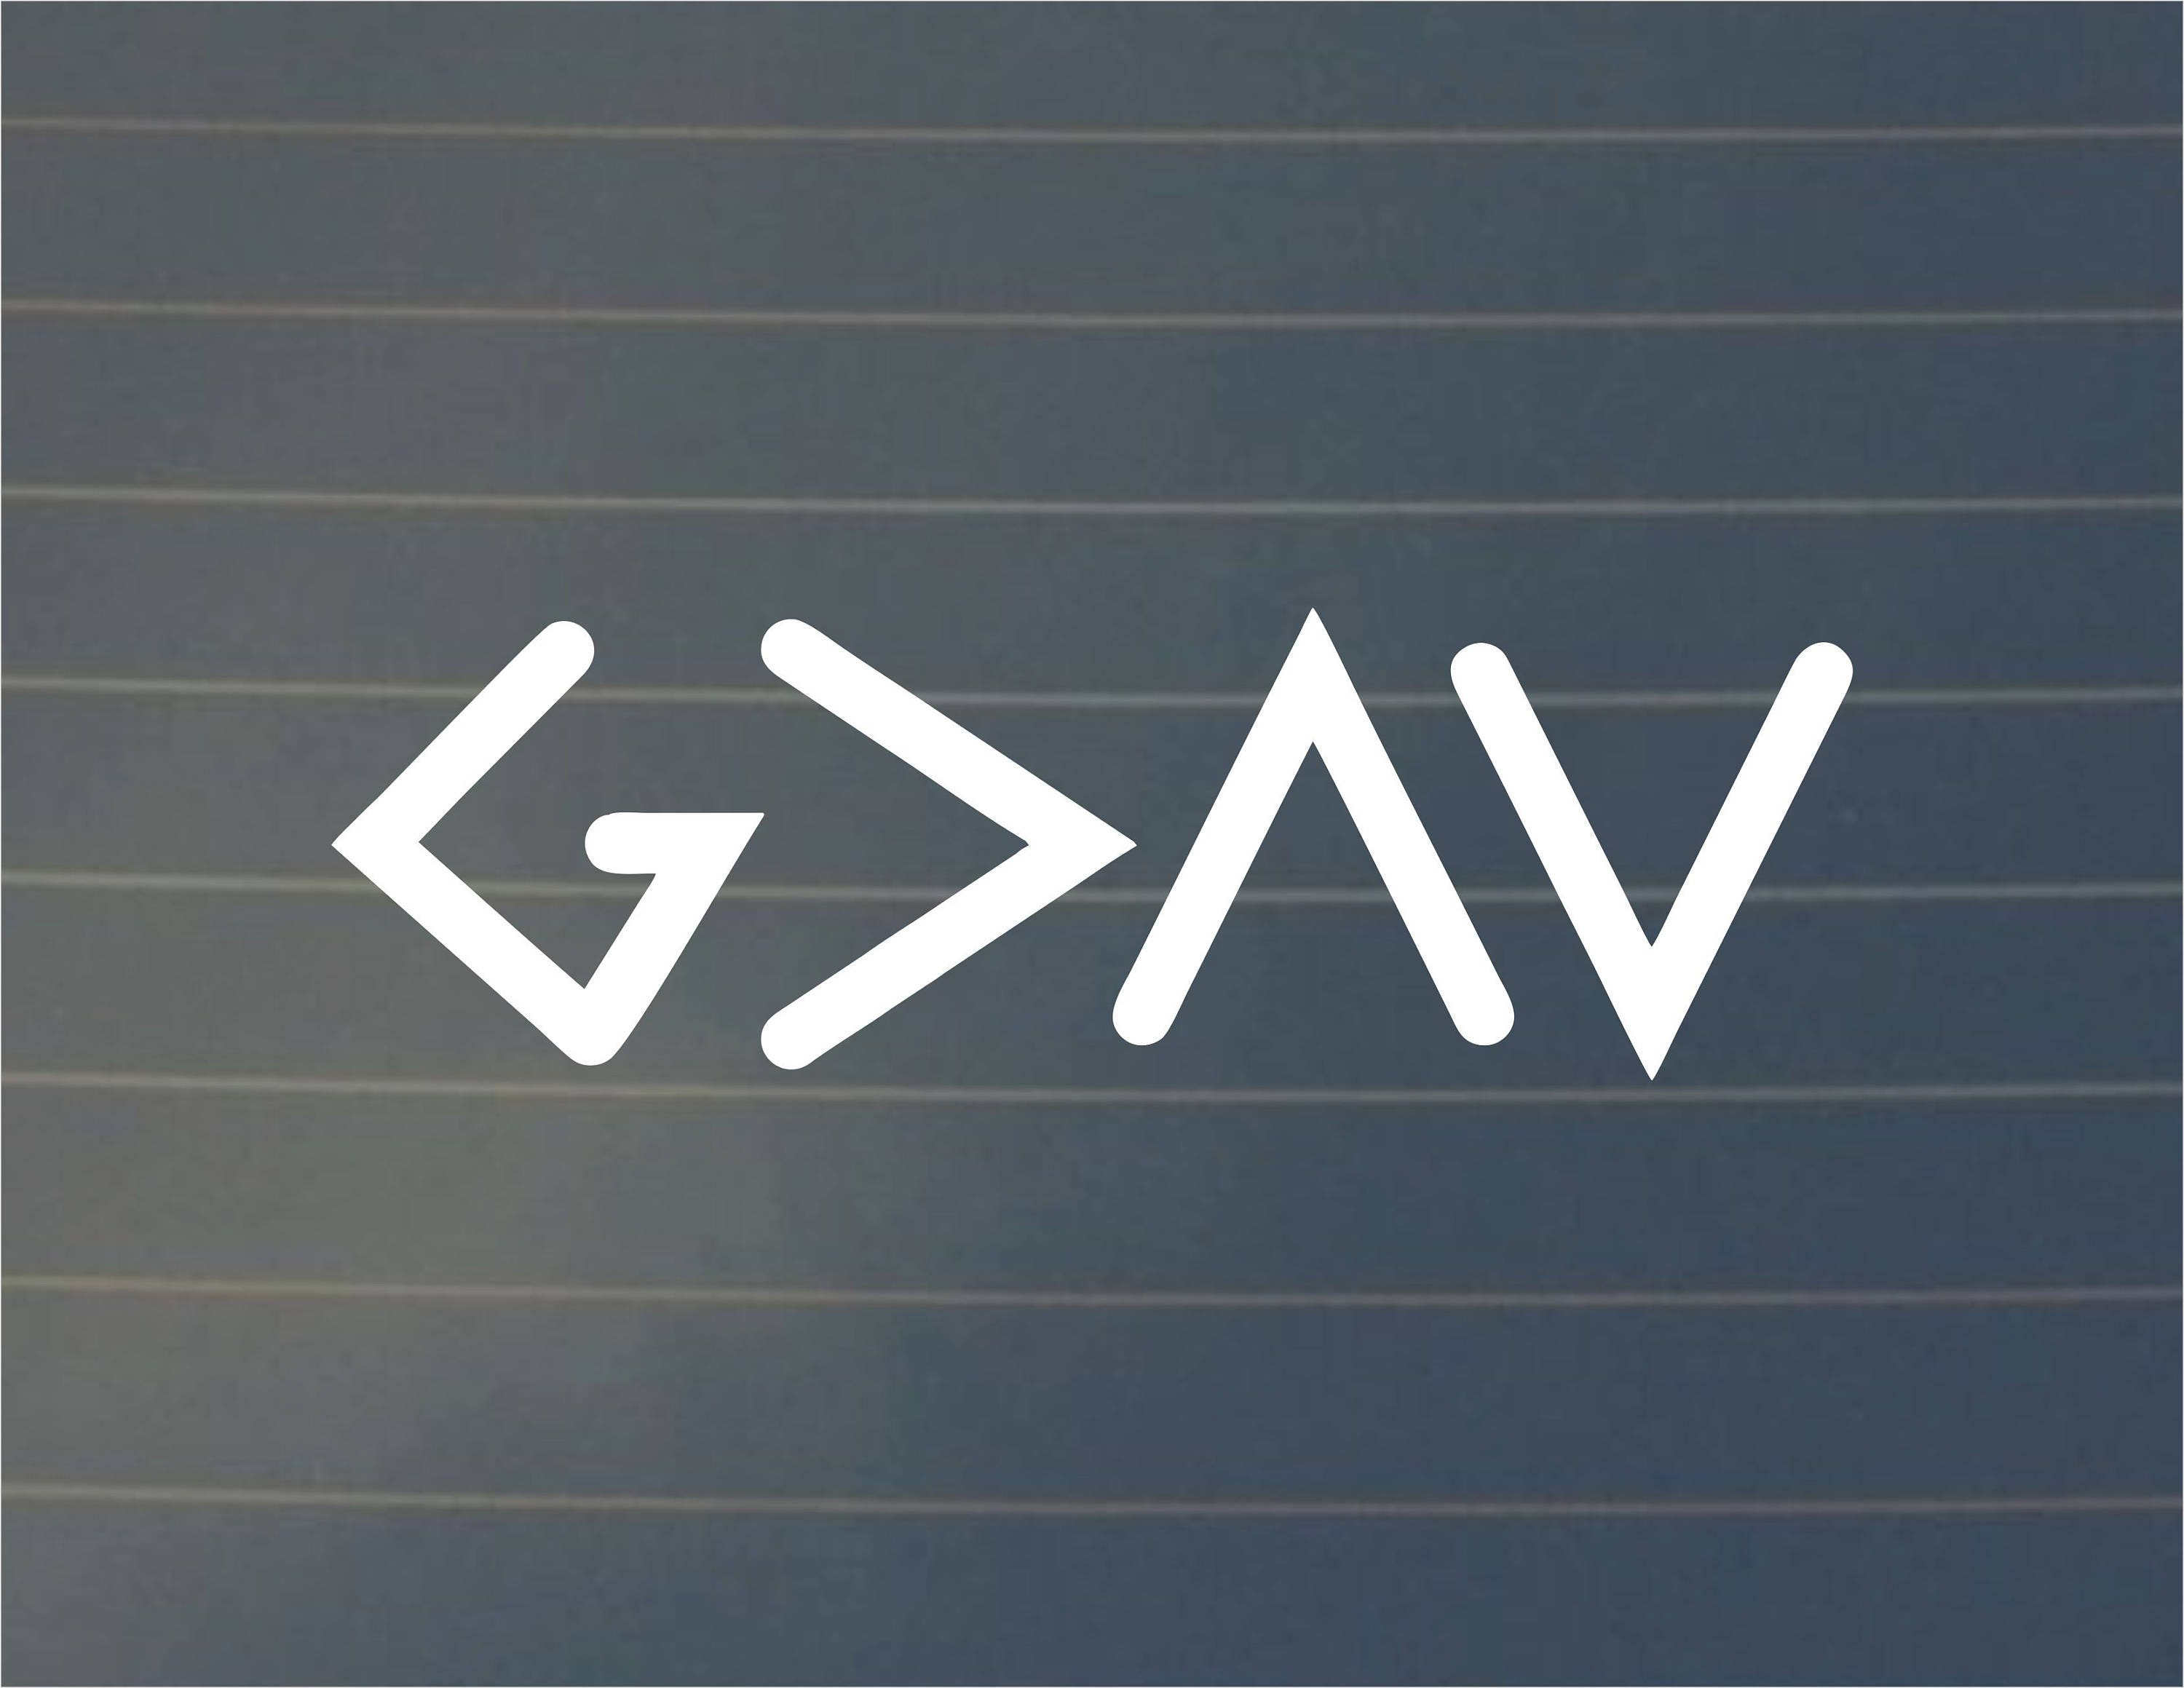 Decal god is greater than the highs and lows car decal quote decal laptop decal laptop stickers vinyl decal sticker religious gift